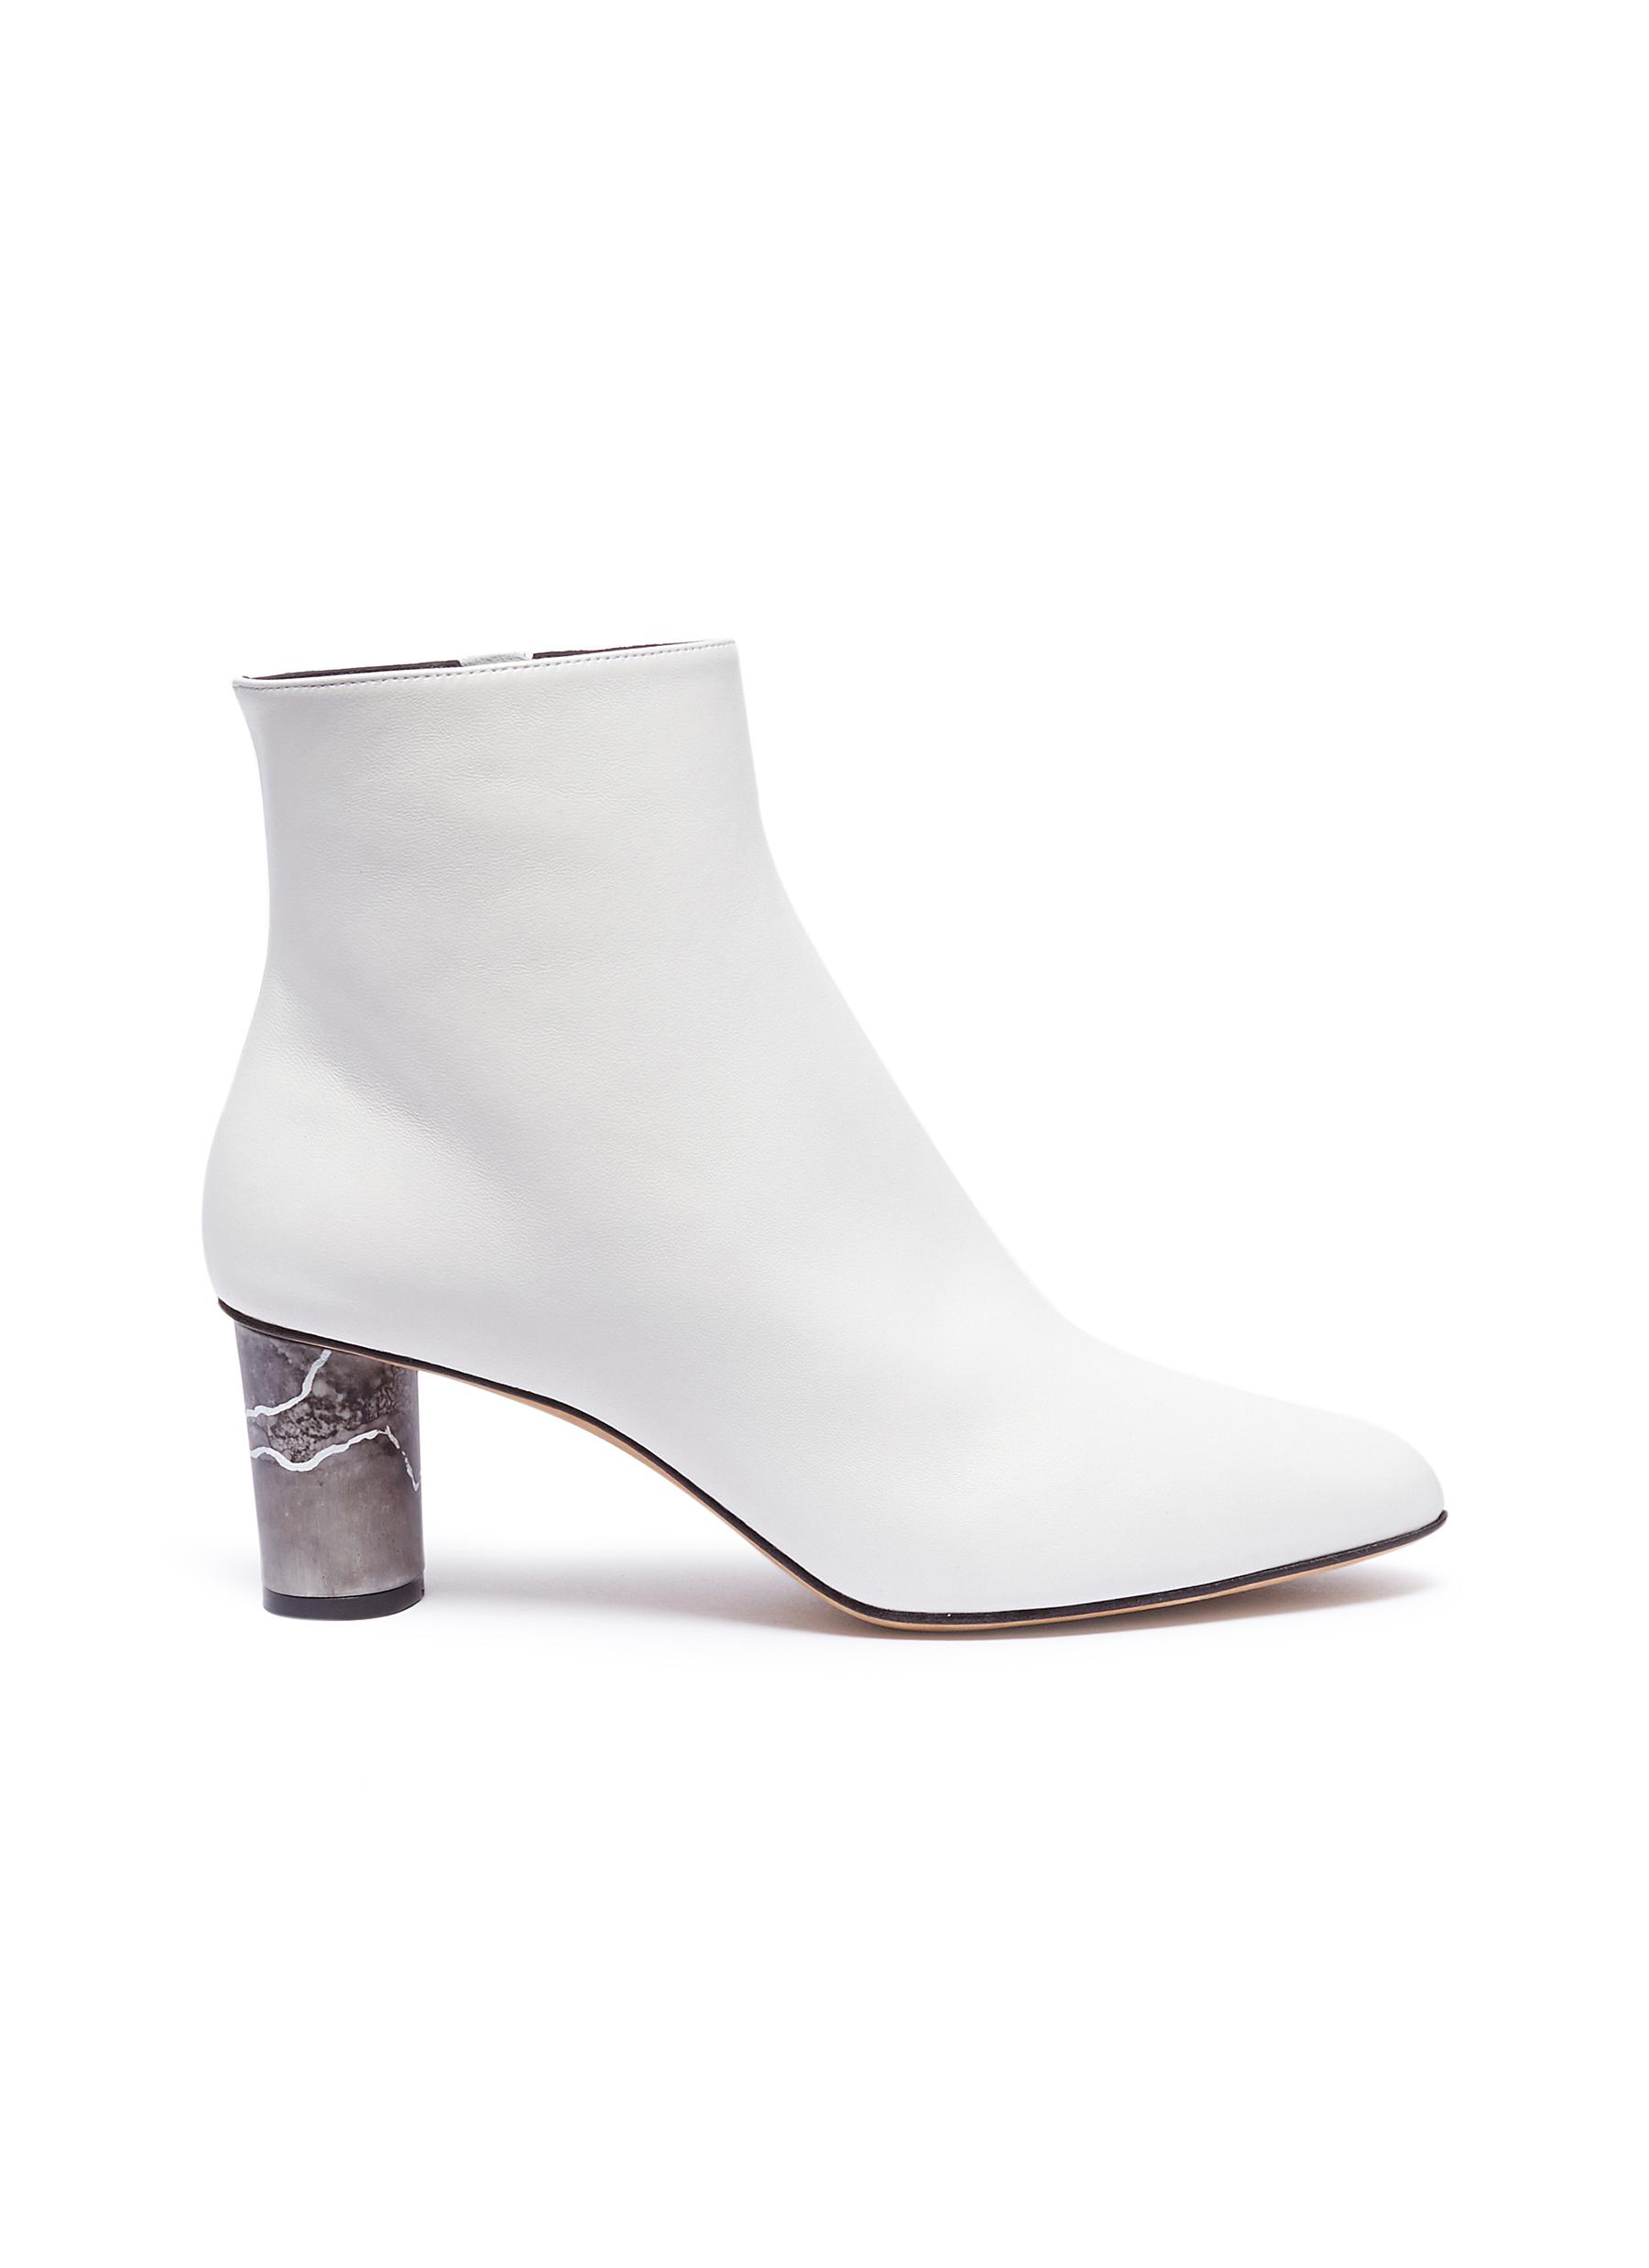 Monika marble effect heel leather ankle boots by Gray Matters